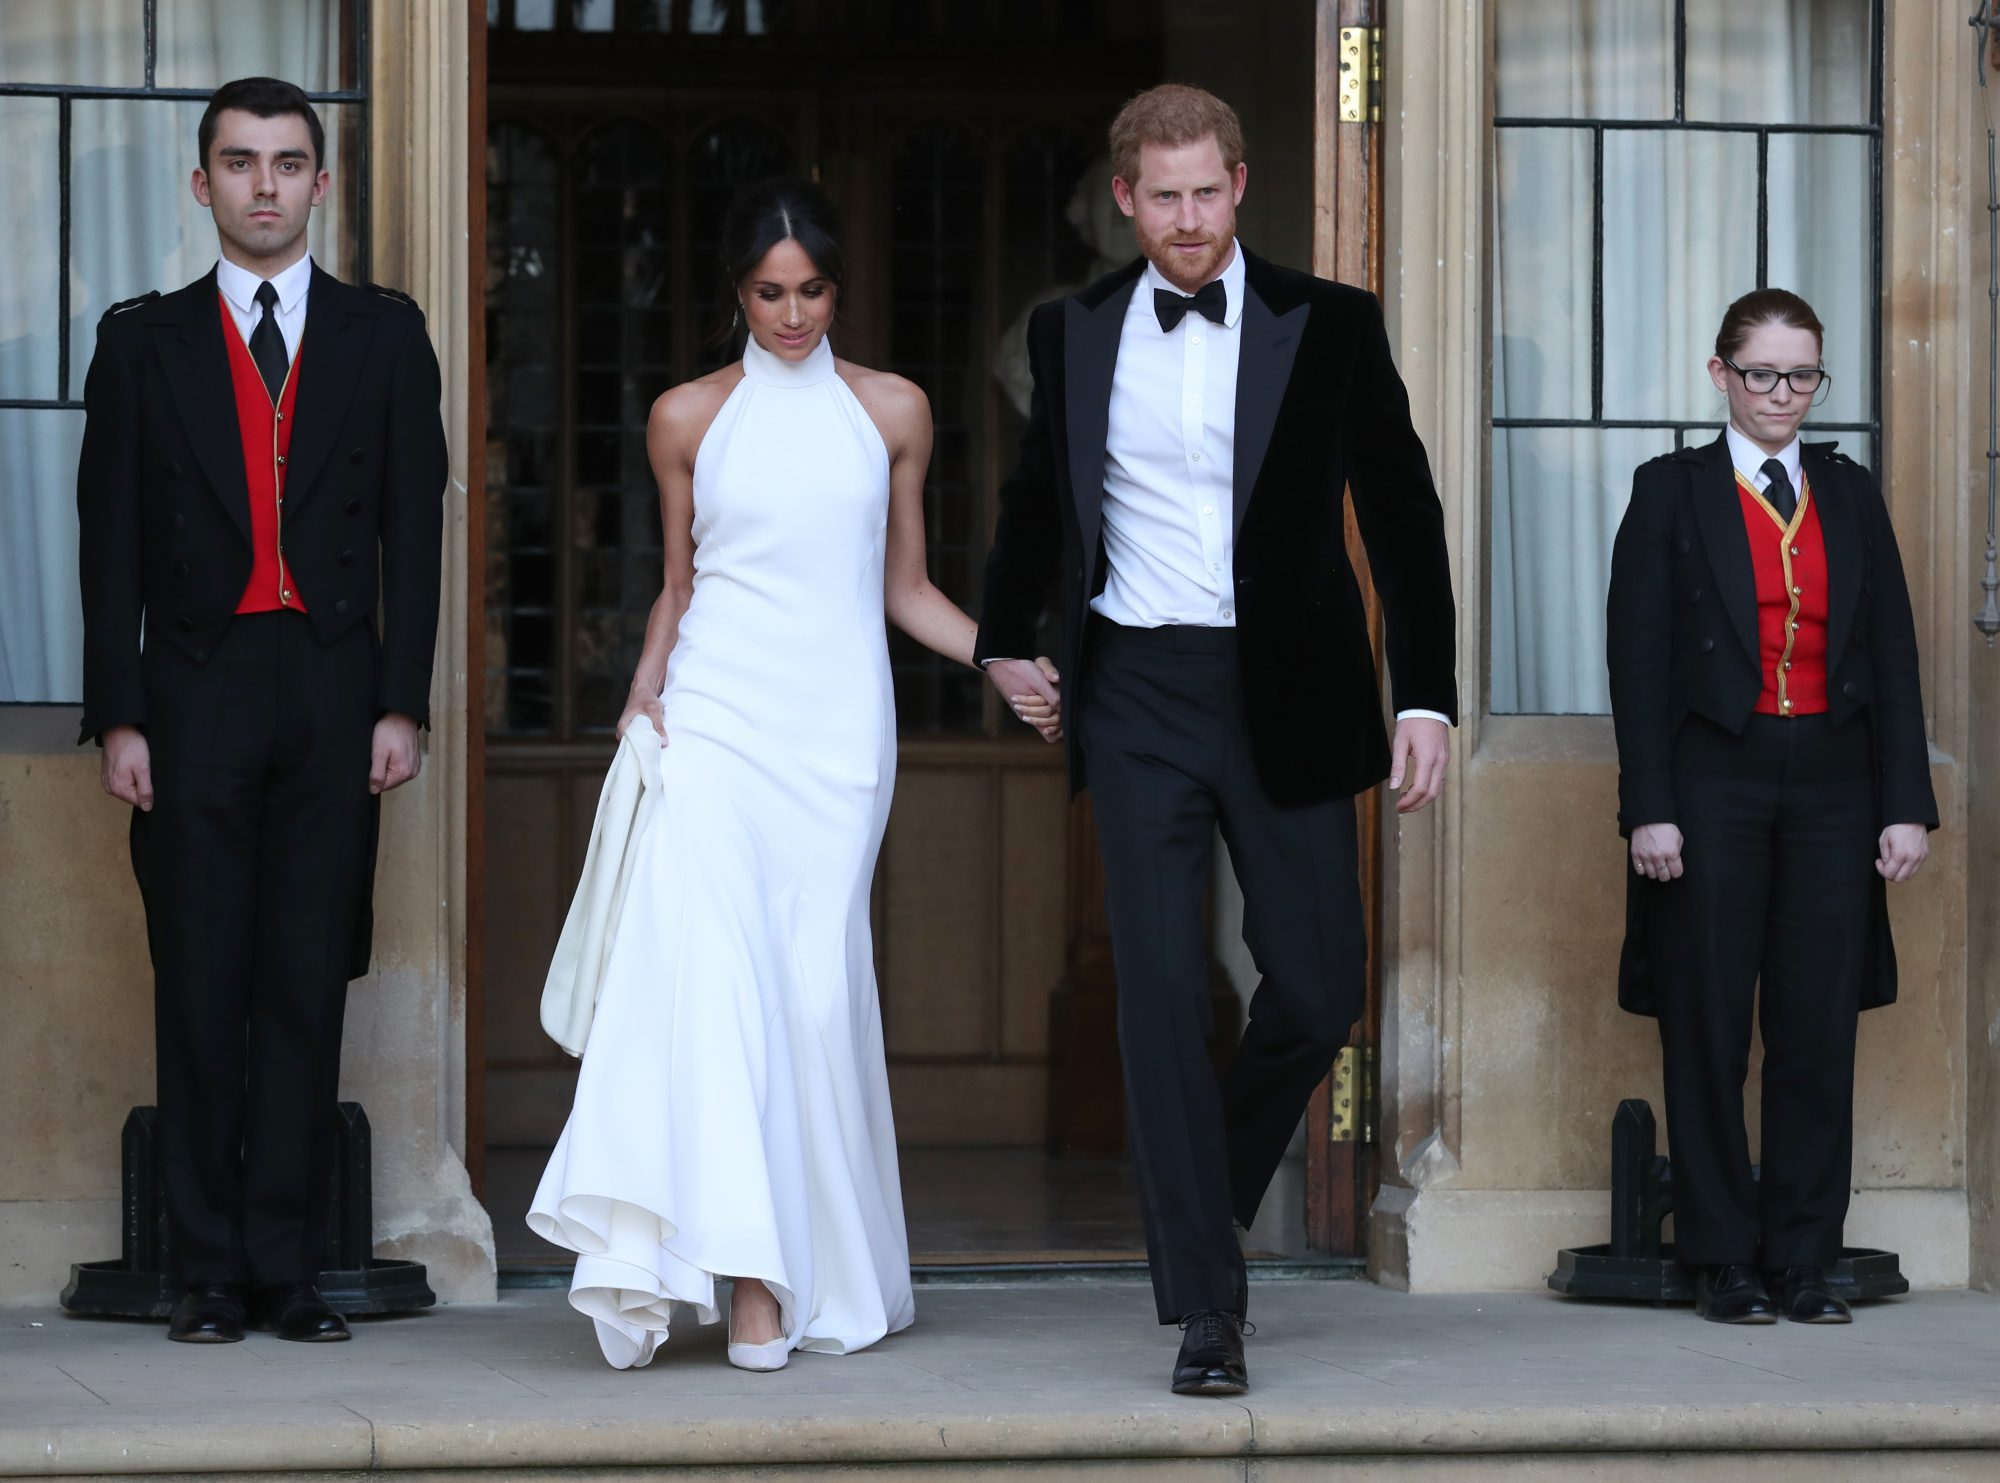 Meghan Markle and Prince Harry Wedding Reception